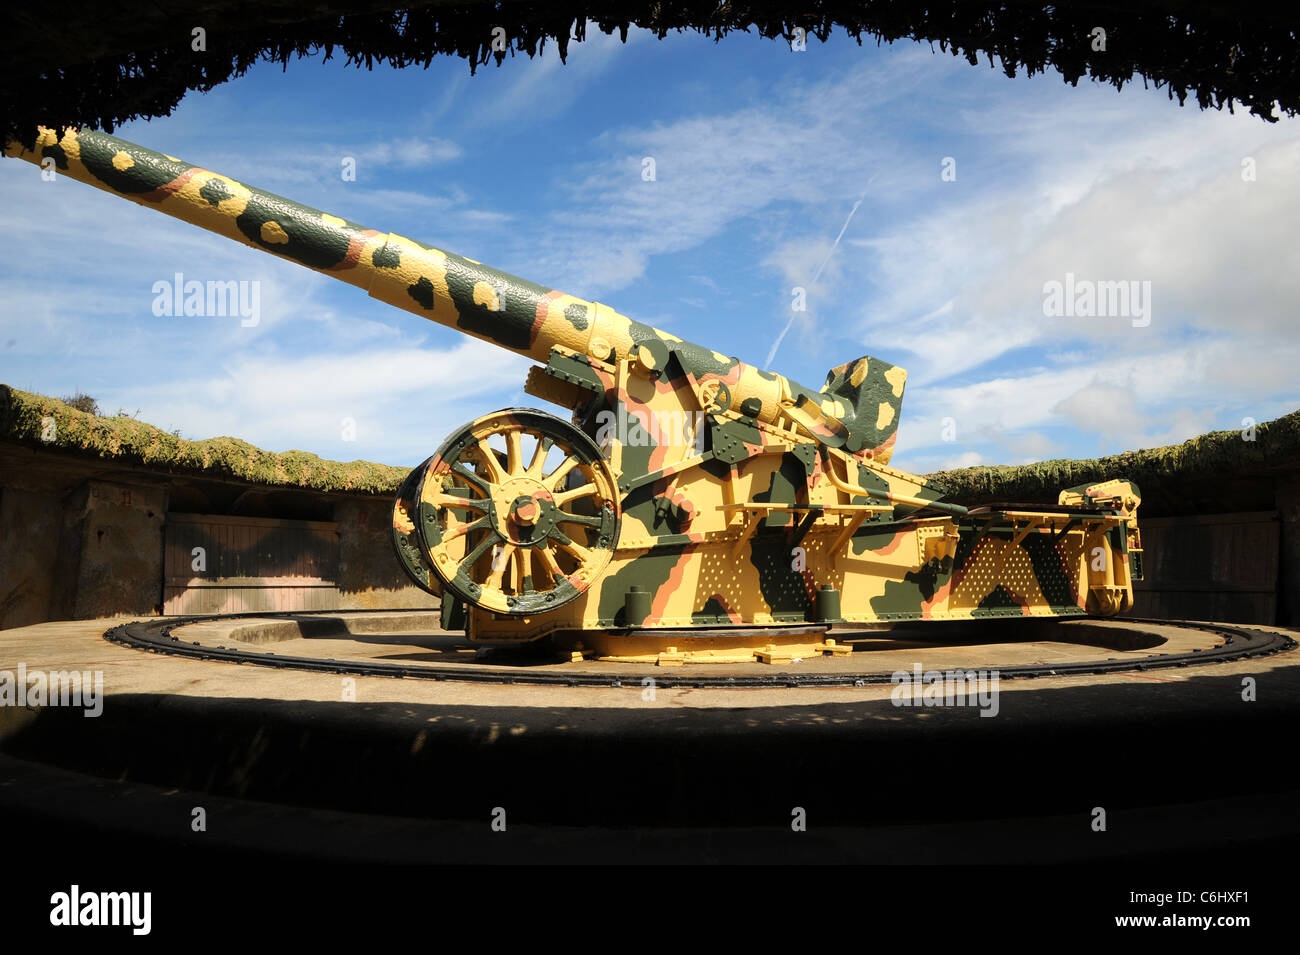 WW11 German 22cm artillery piece on display in a restored bunker at Batterie Dollmann, Guernsey. - Stock Image